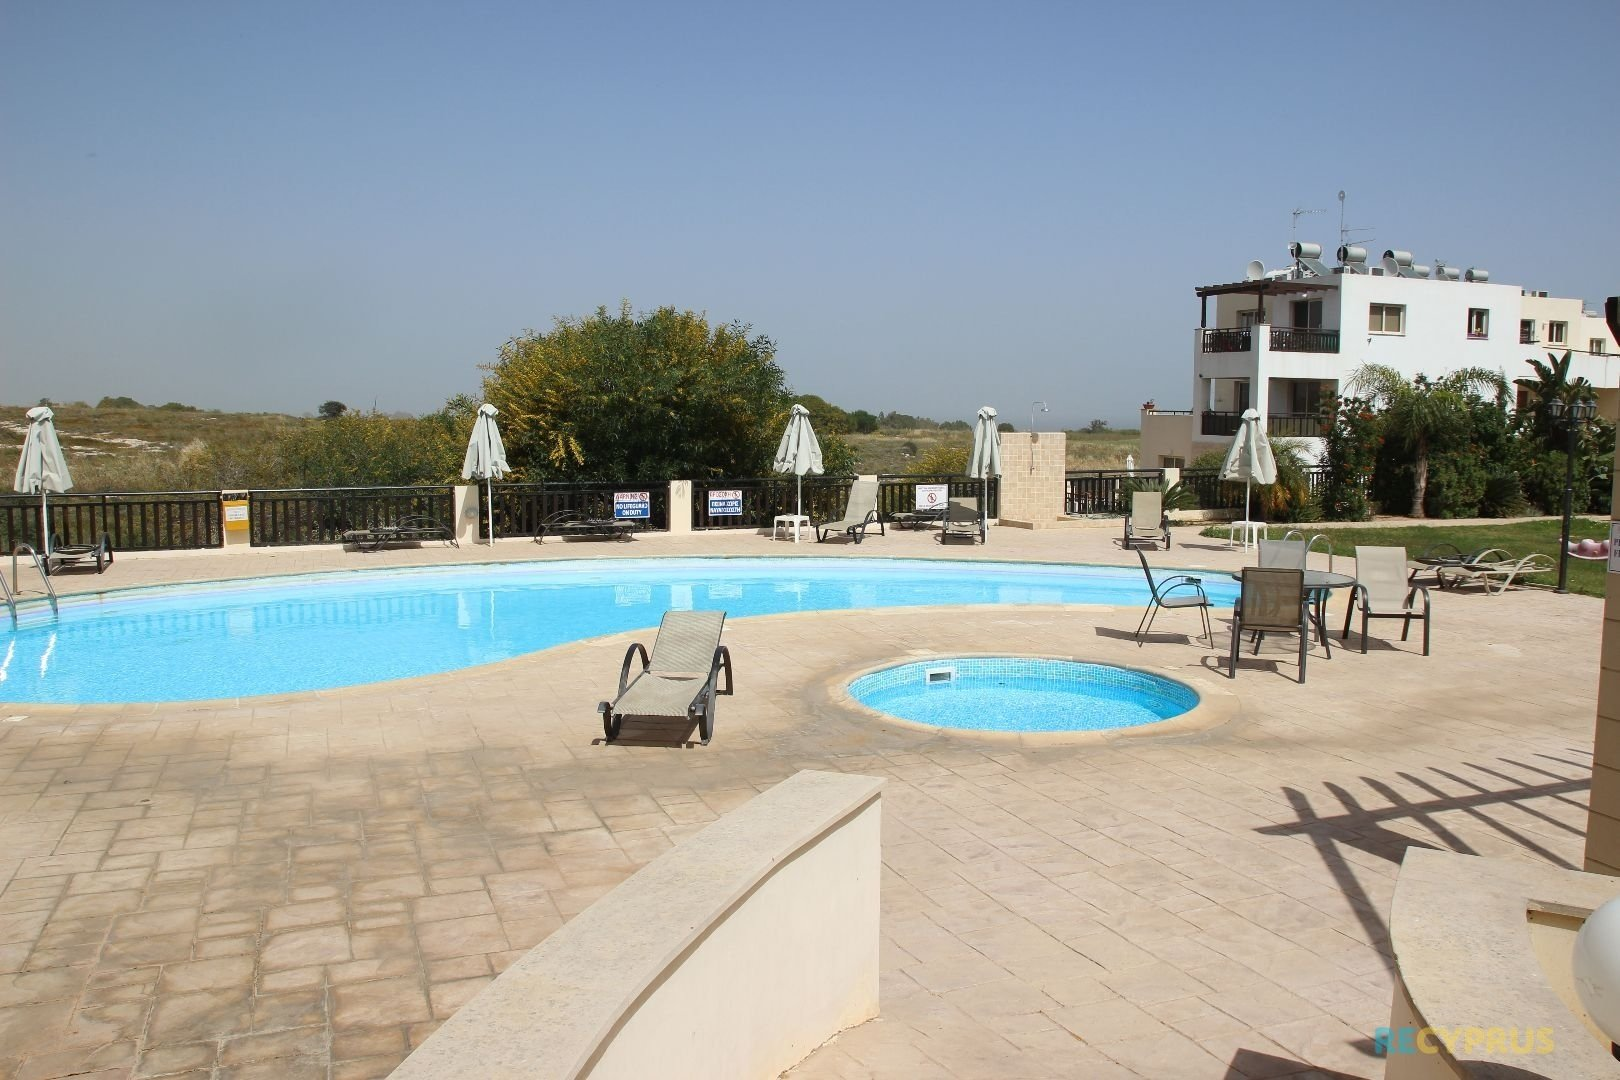 Apartment for sale Kapparis Famagusta Cyprus 9 3560